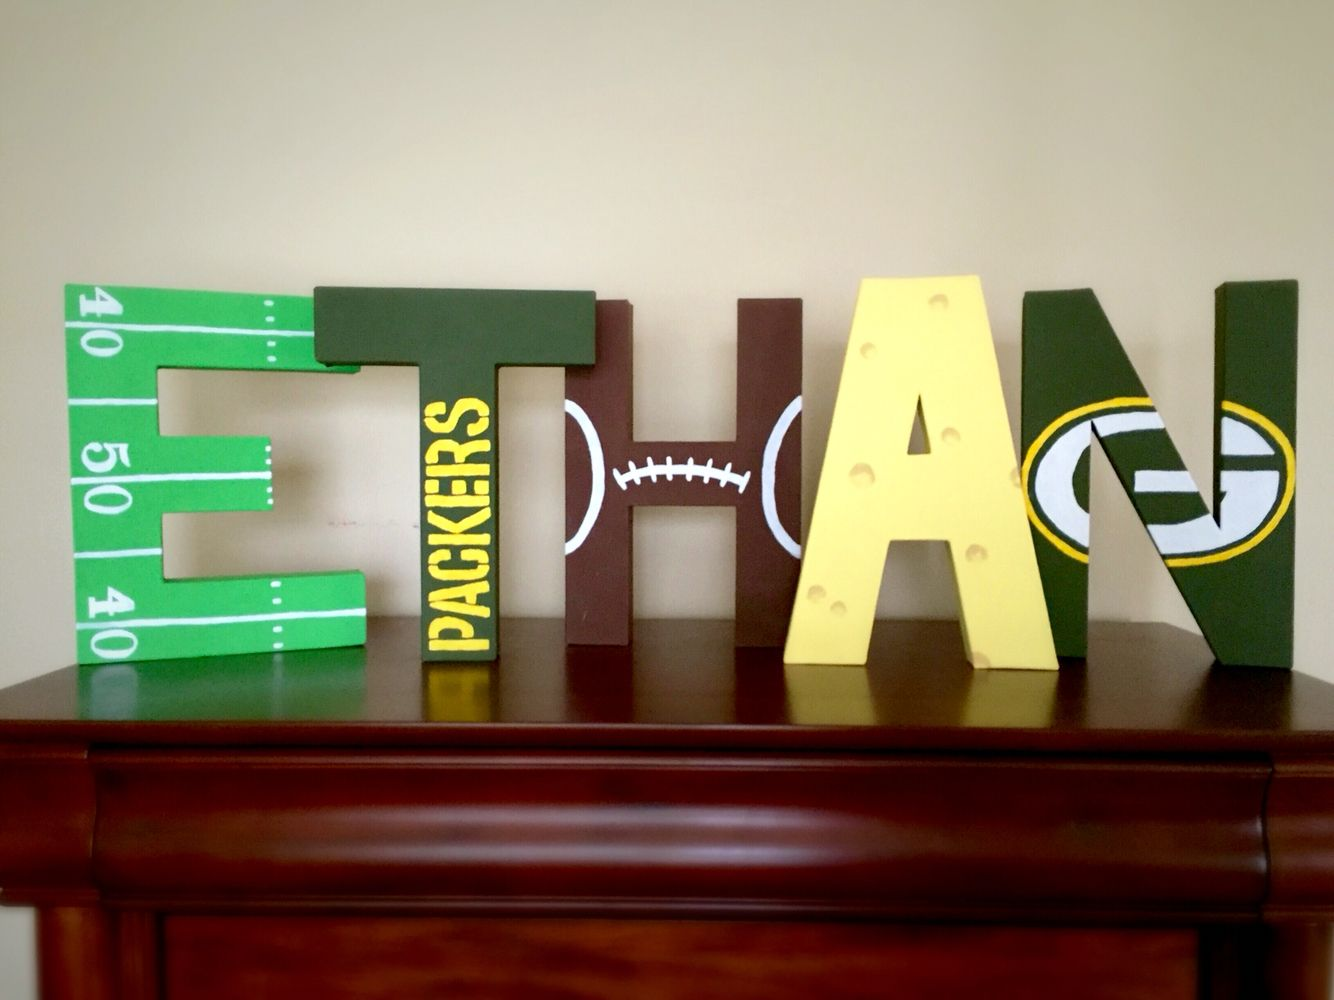 Restoration hardware boys bedroom - Nfl Painted Letters For Boys Bedroom Greenbay Packers Themed Football Letters